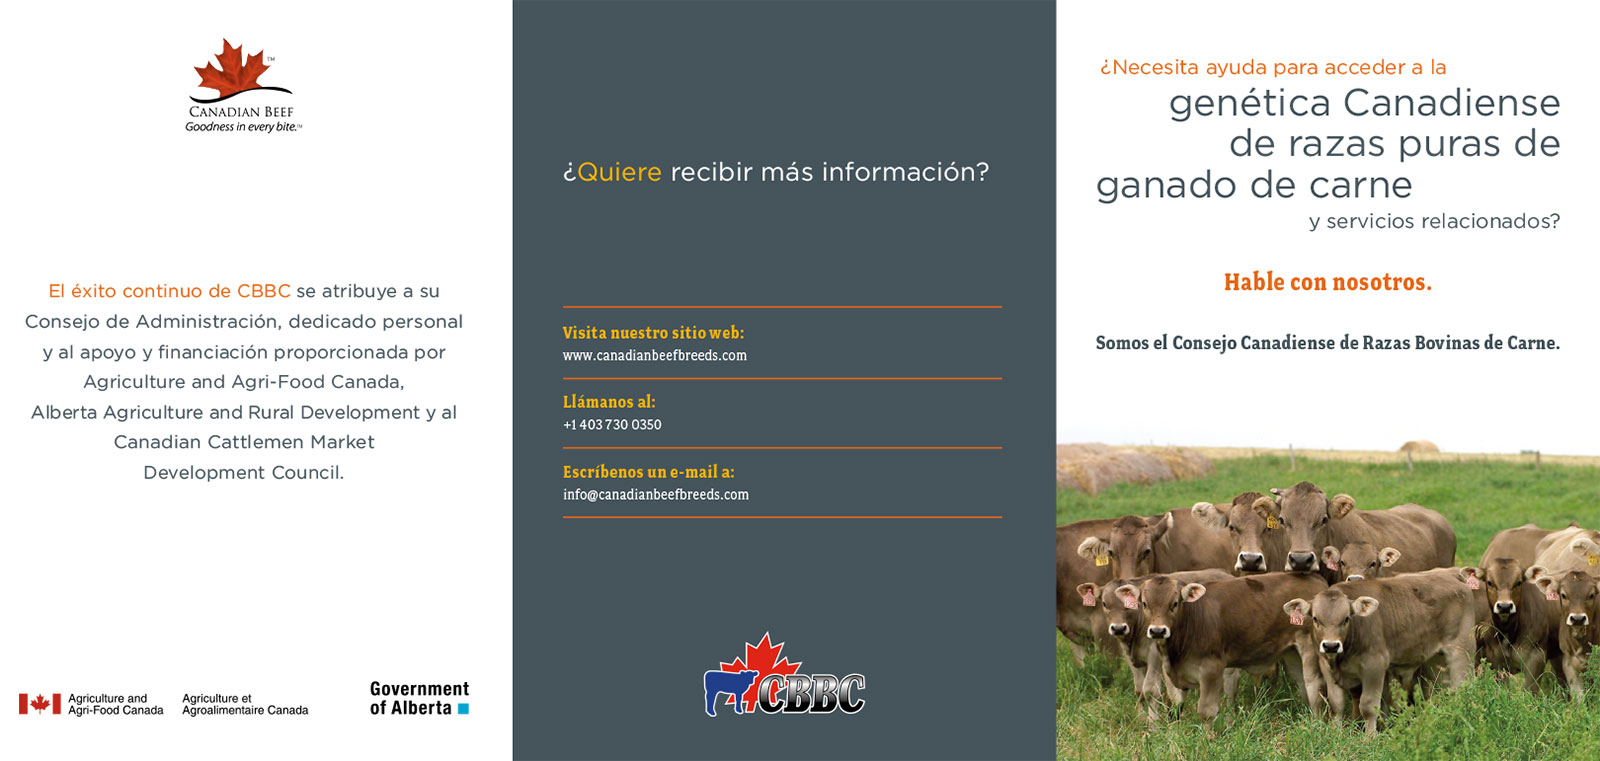 Canadian Beef Breeds Council: purebred beef genetics marketing brochure in Spanish